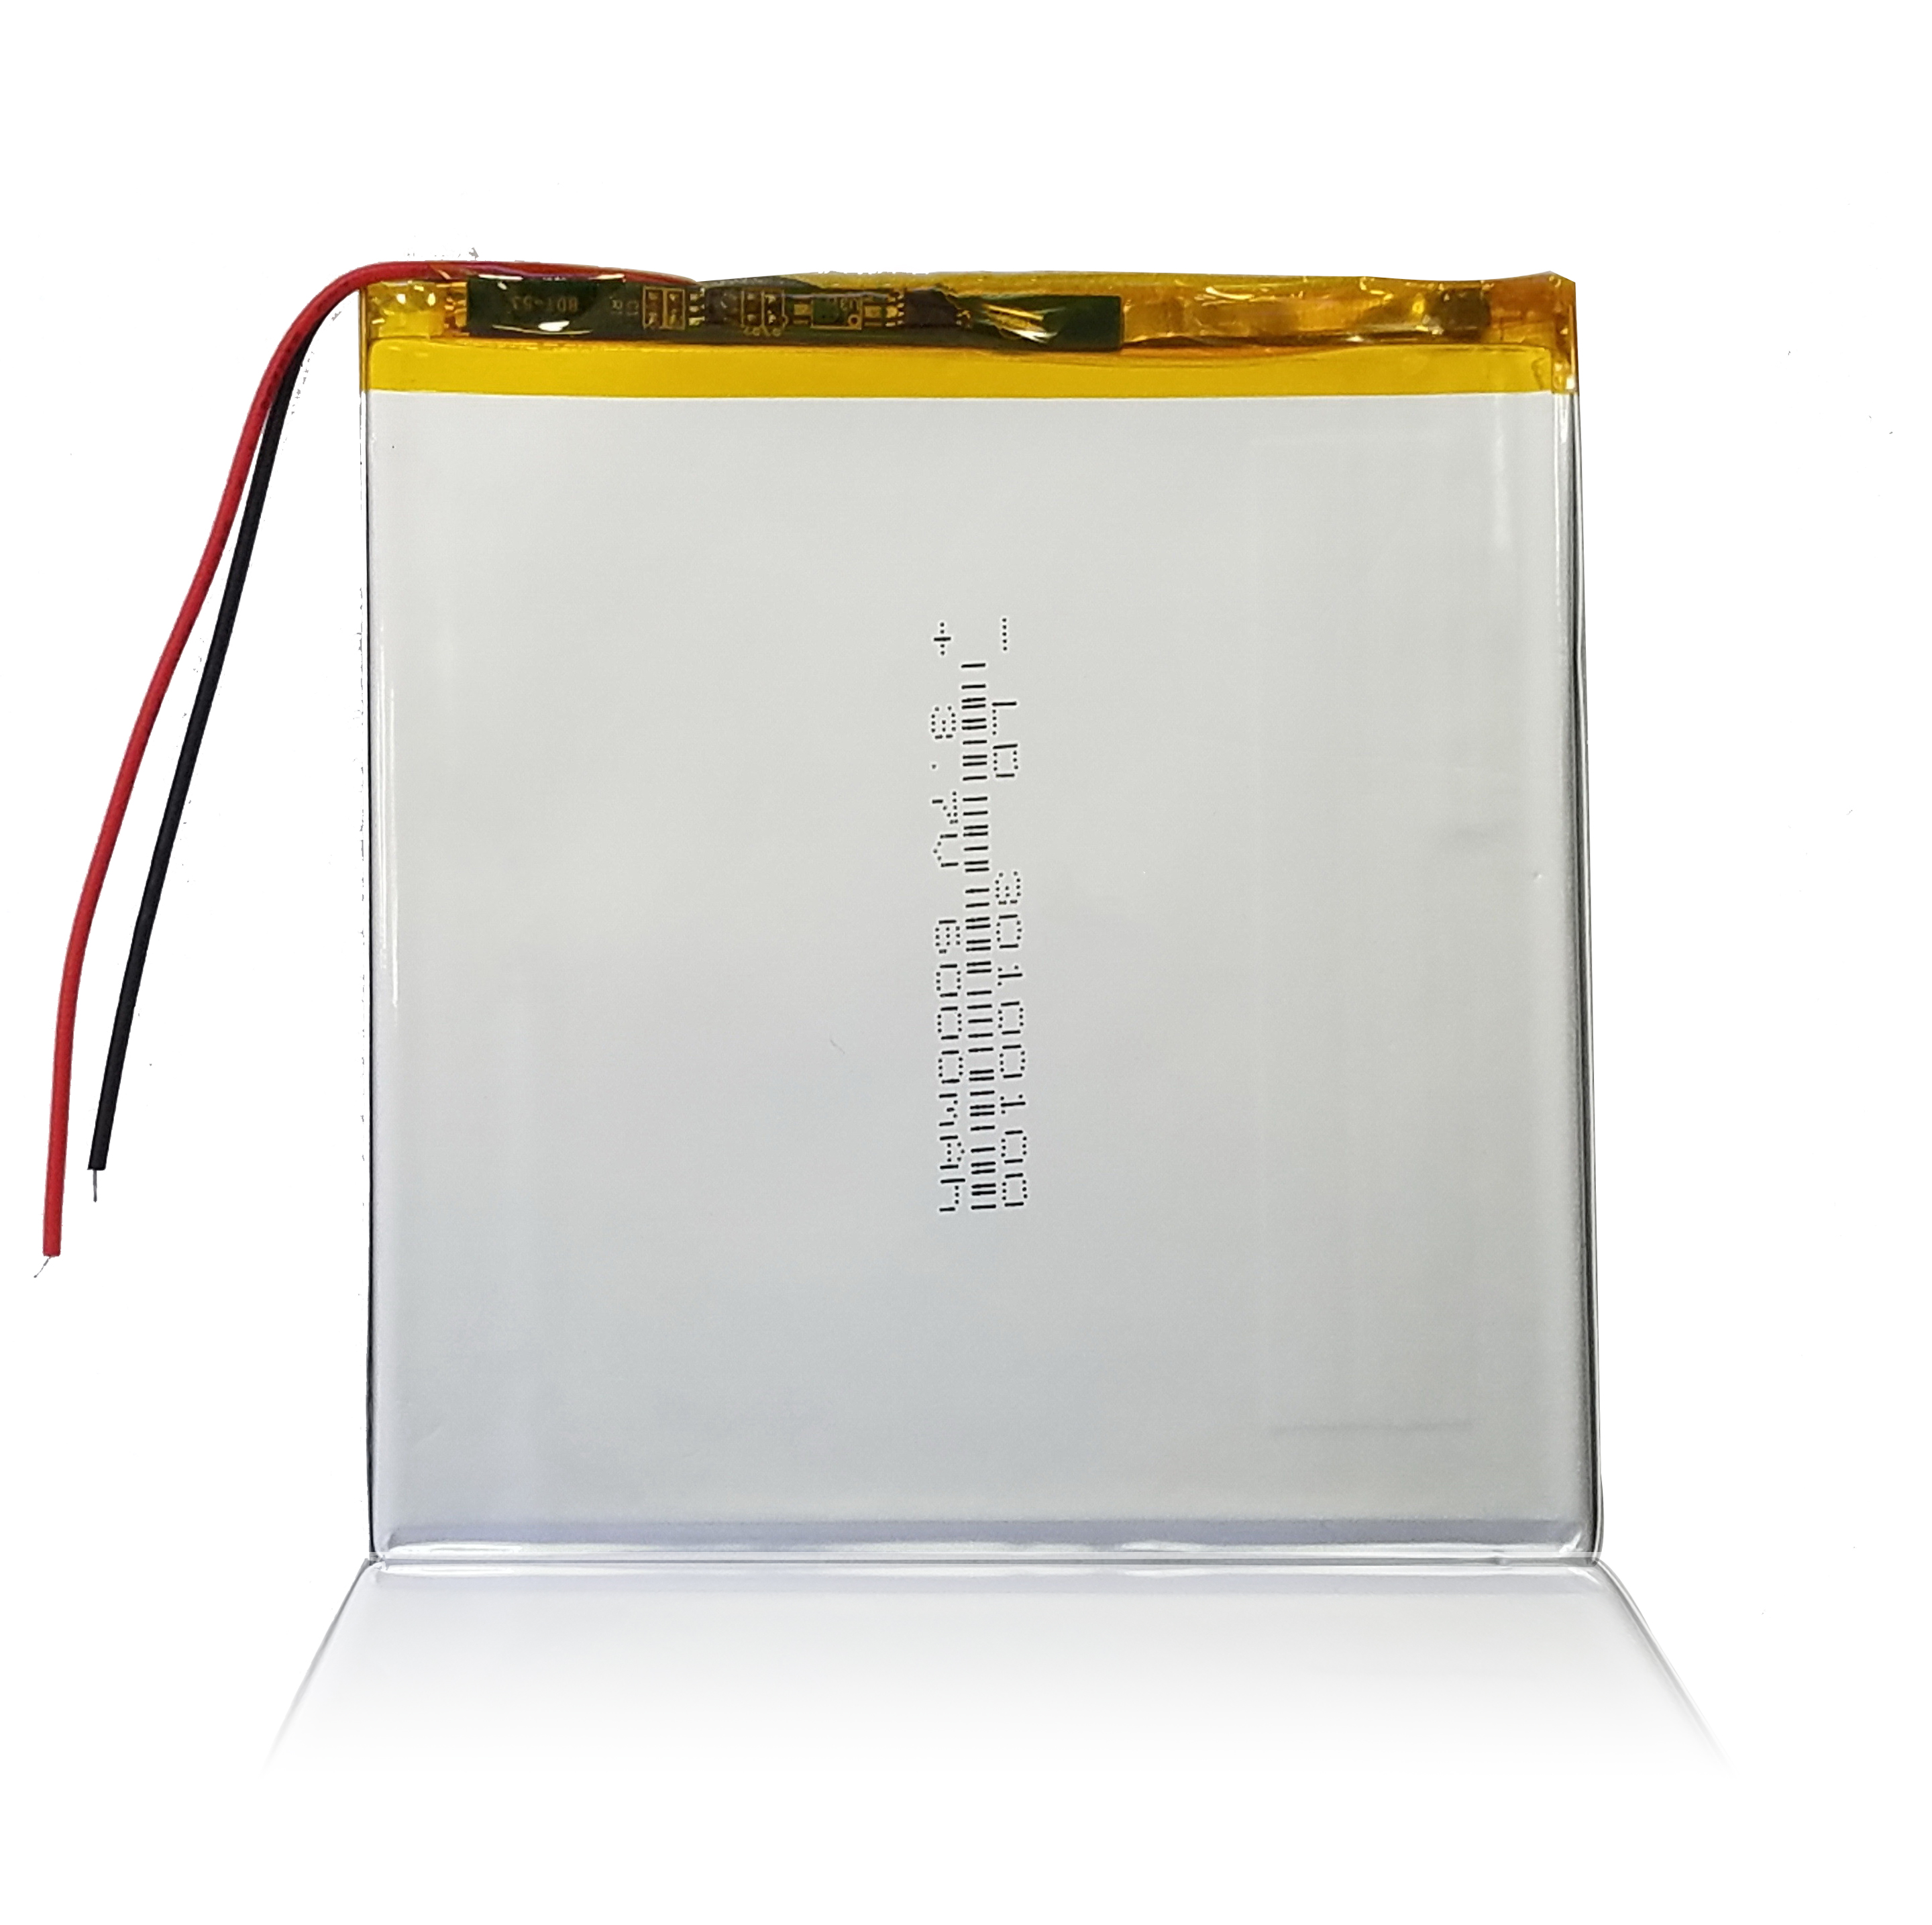 30100100 3.7V <font><b>6000mAh</b></font> Rechargeable Li-Polymer Li-ion Battery For Prestigio MultiPad Visconte Quad 3G PMP881TD PMT3418 PMT3418C image